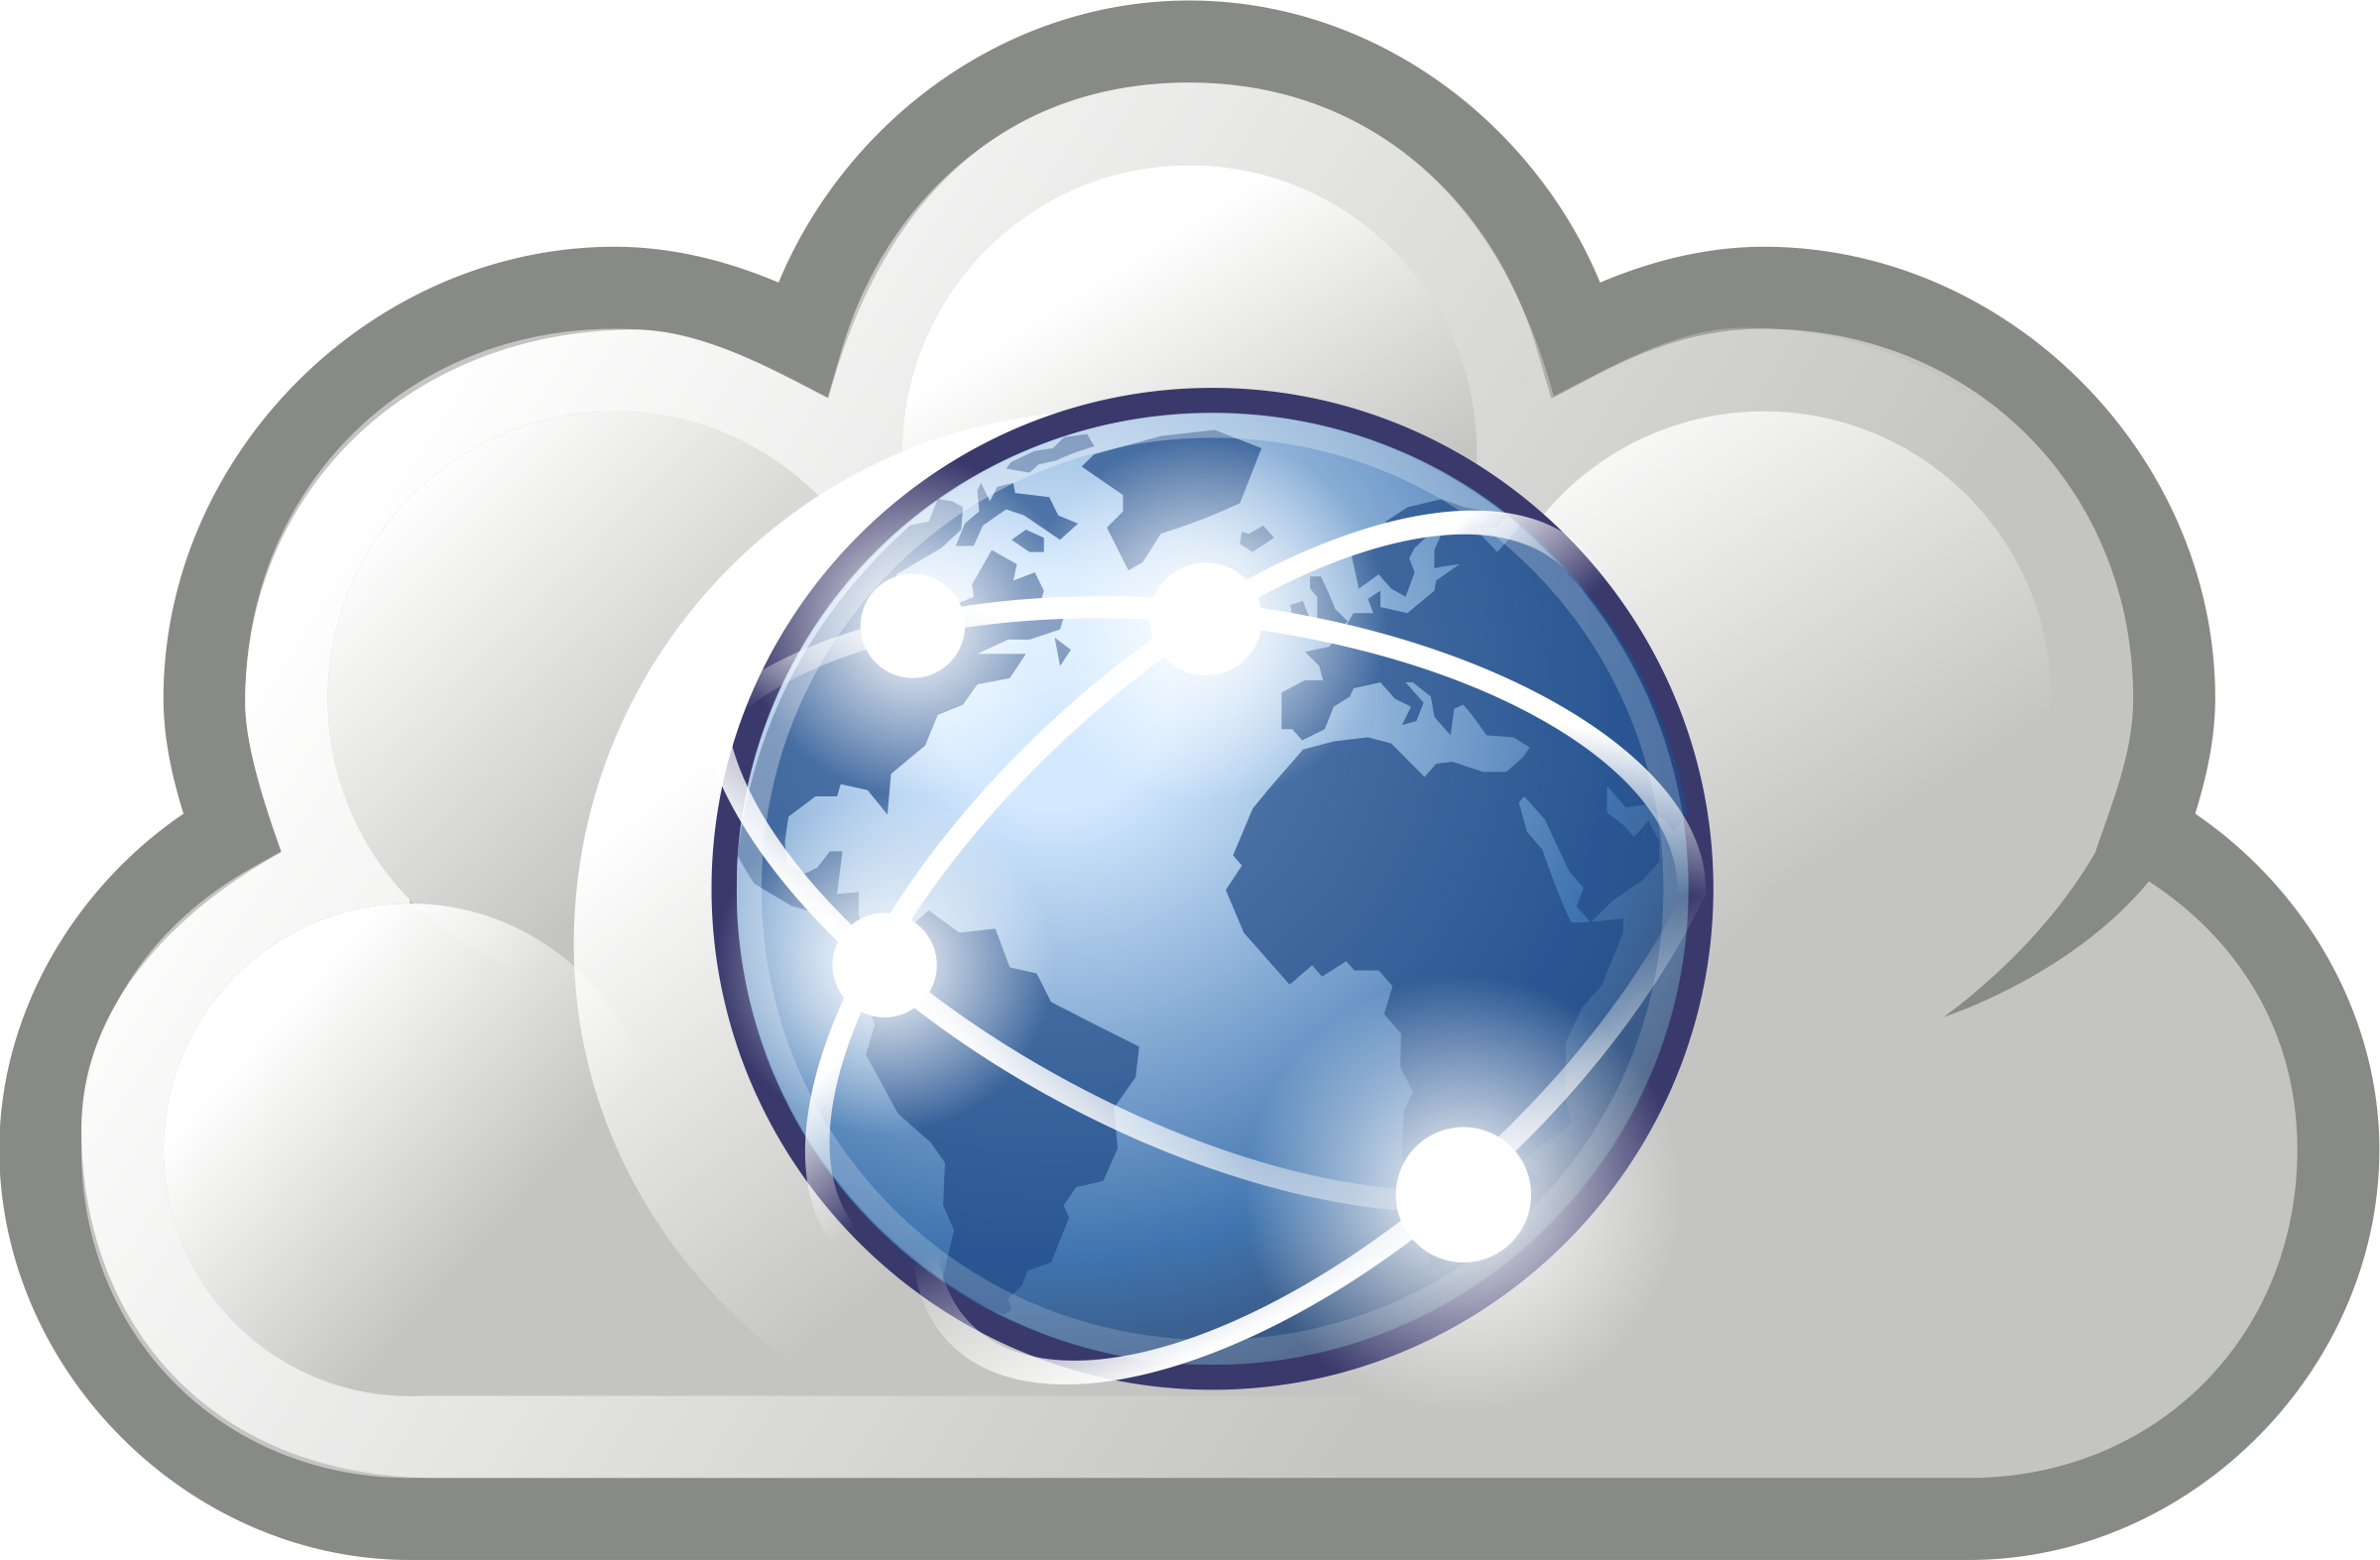 Internet cloud clipart.